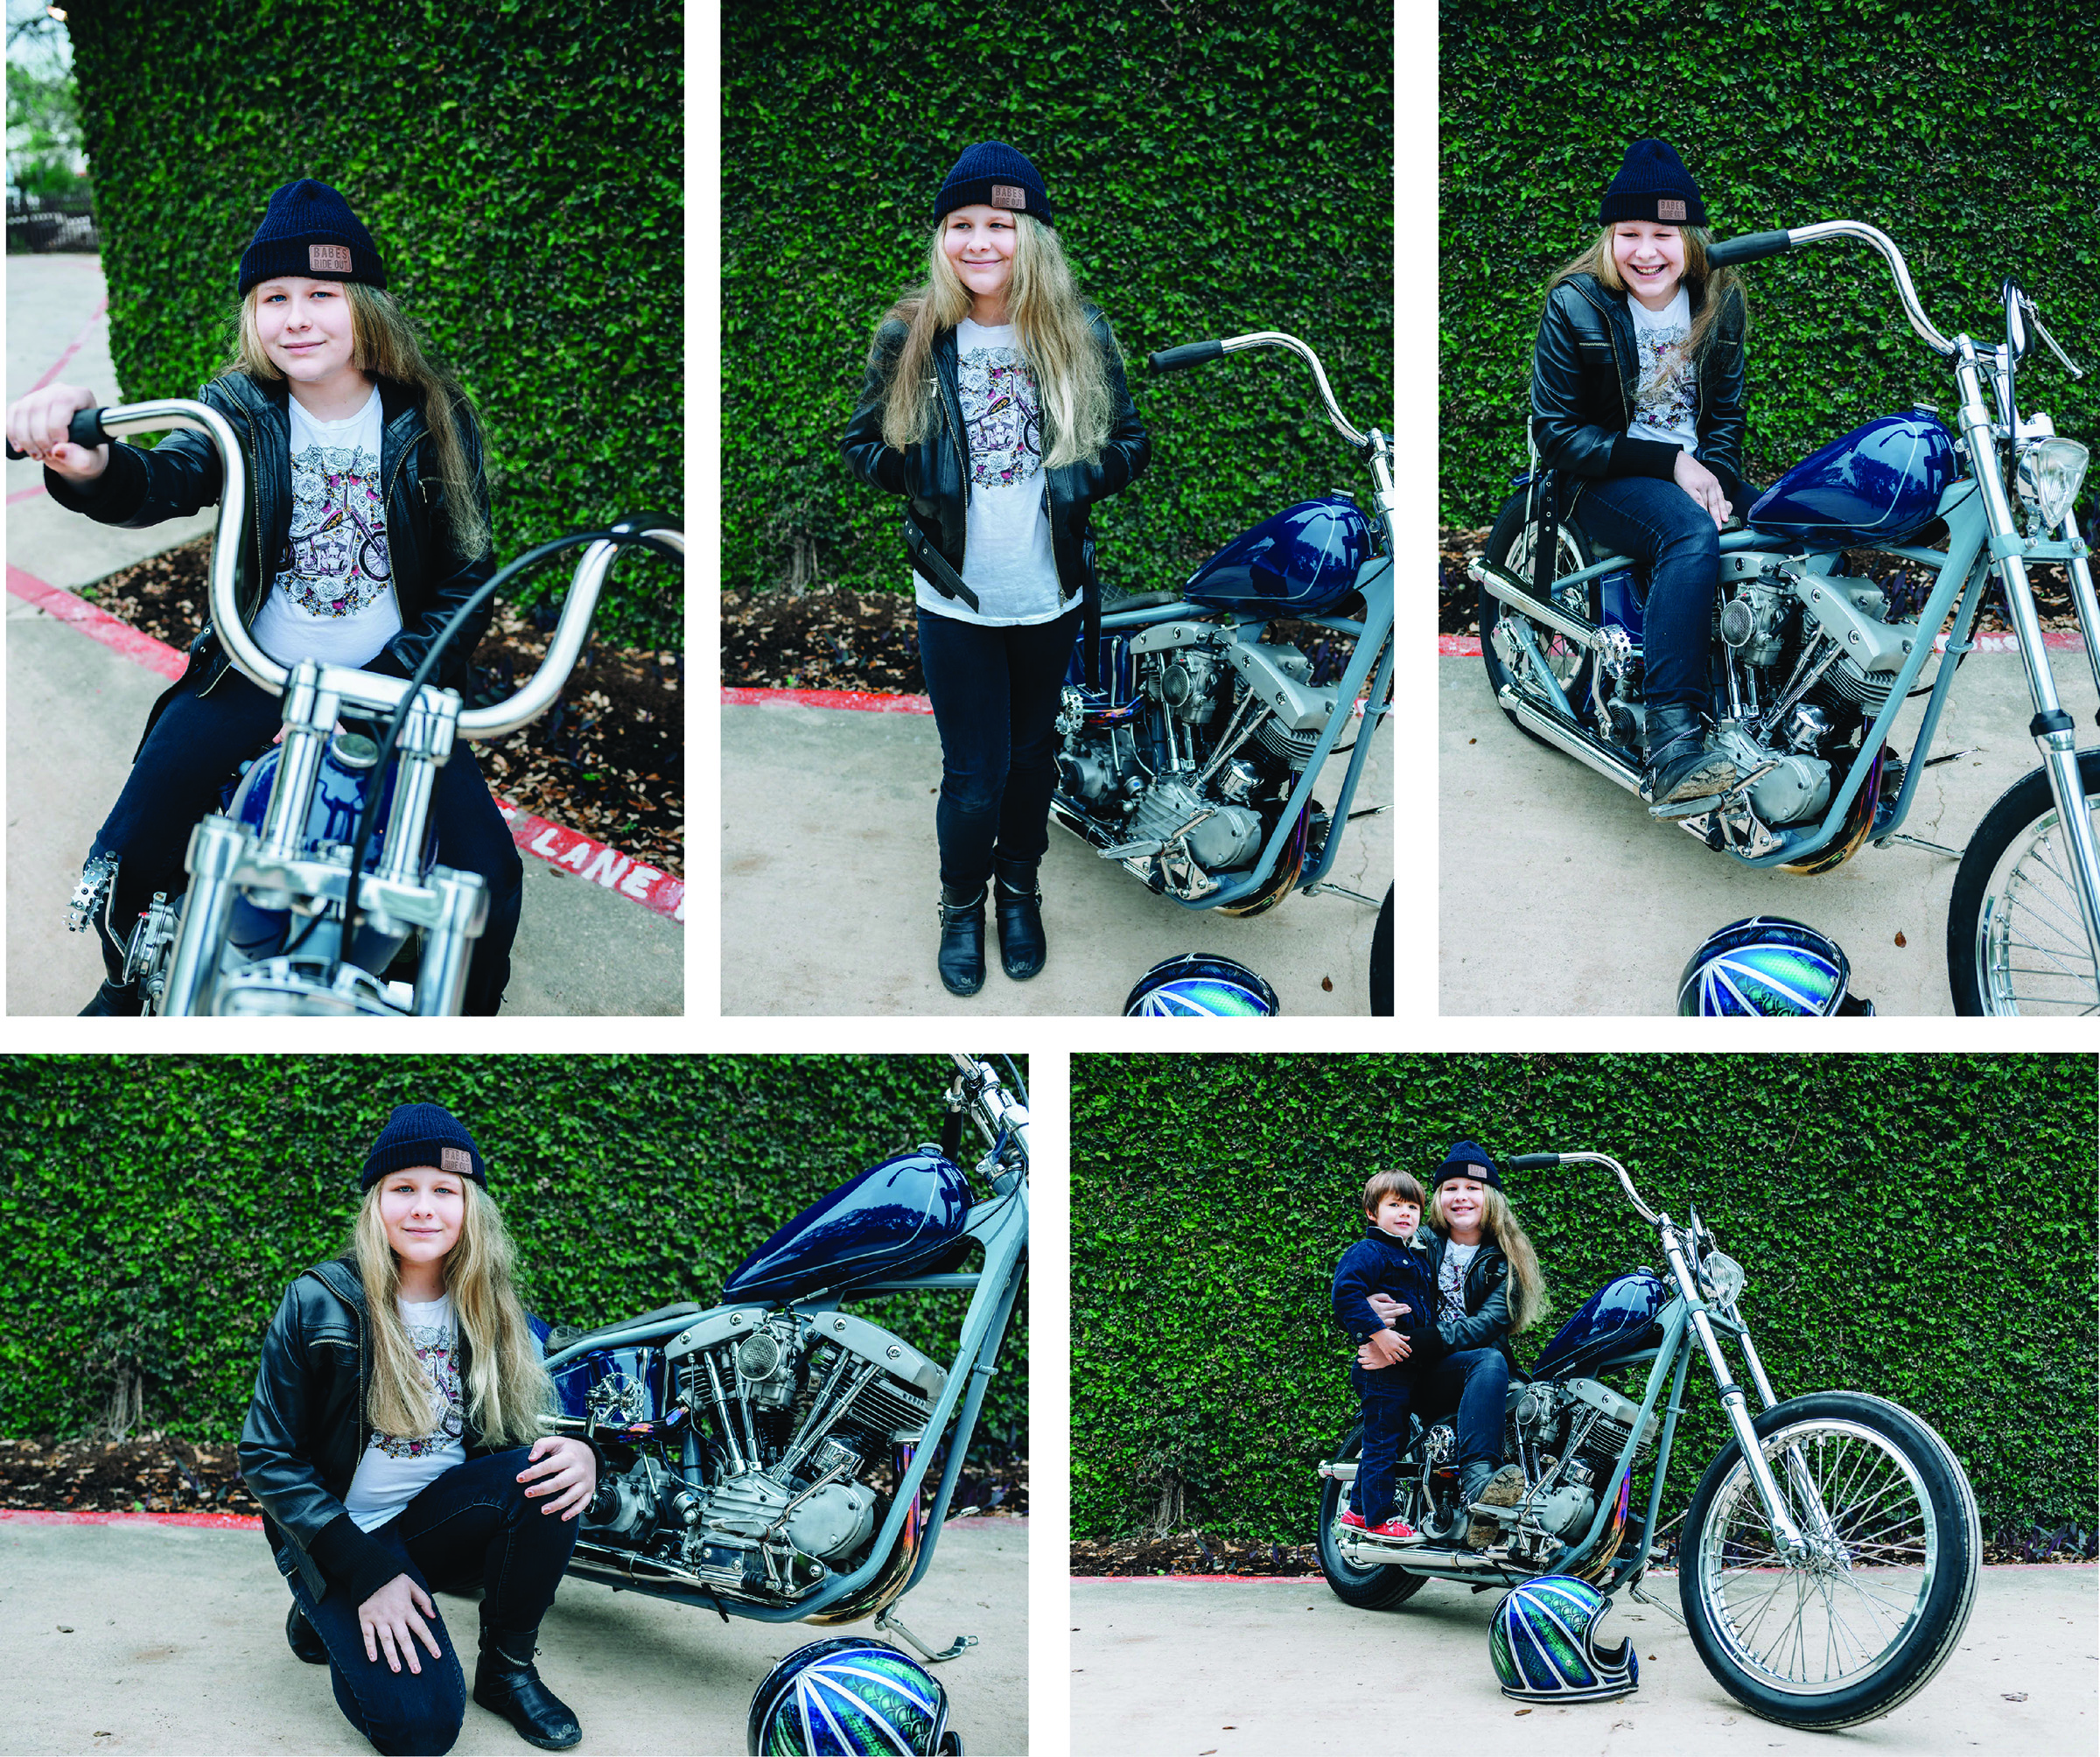 Josh's daughter rocking her Babes Ride Out gear!